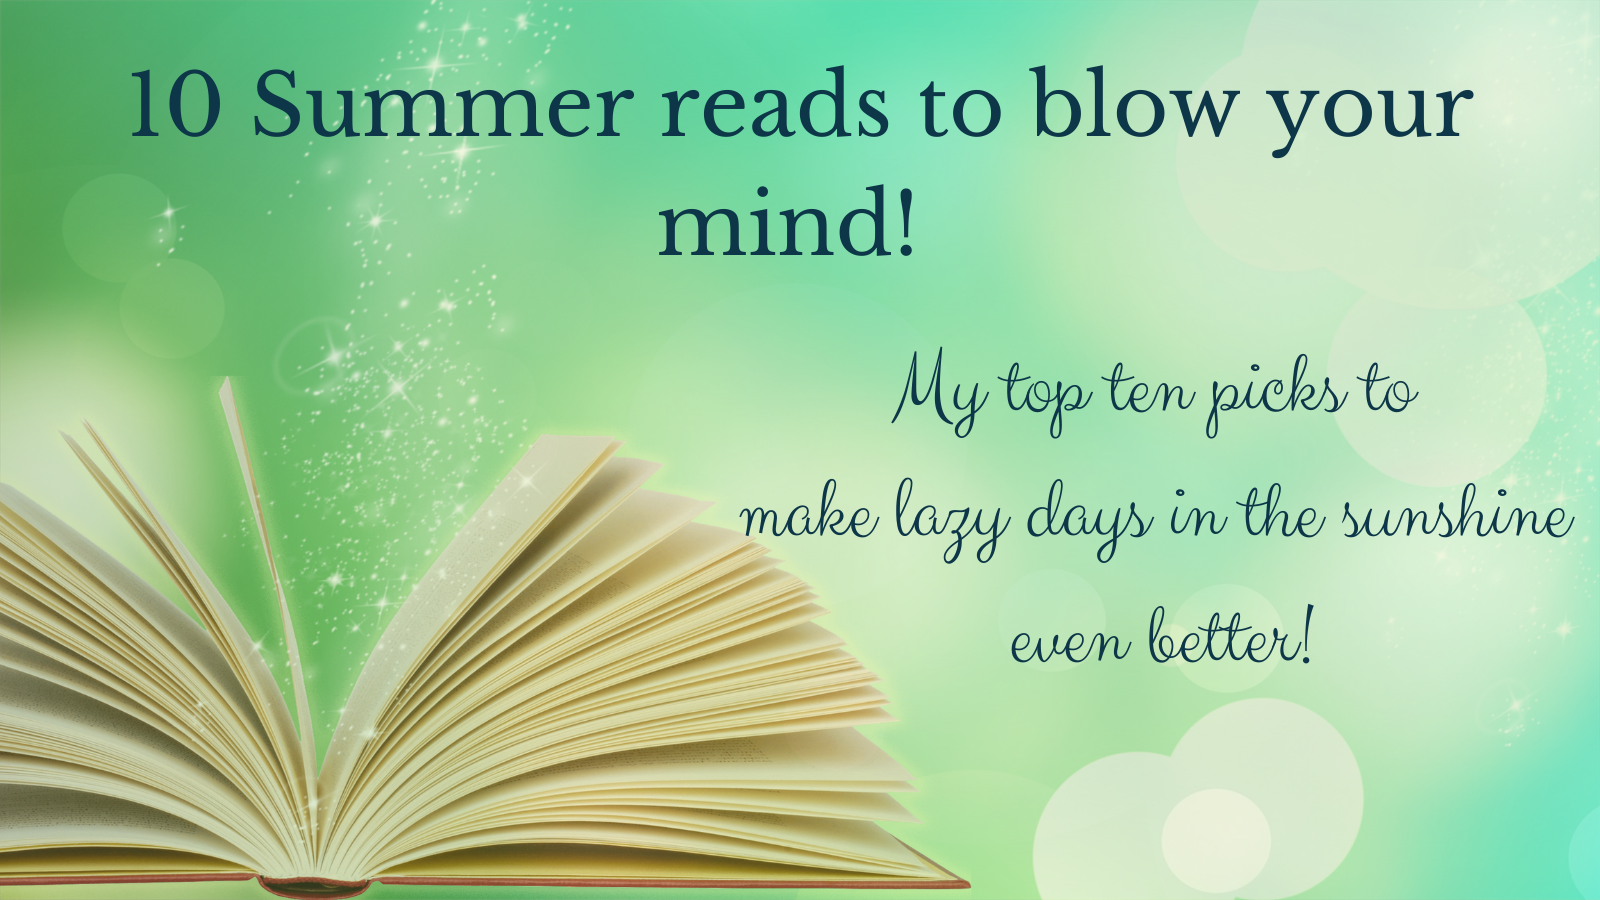 10 summer reads to blow your mind